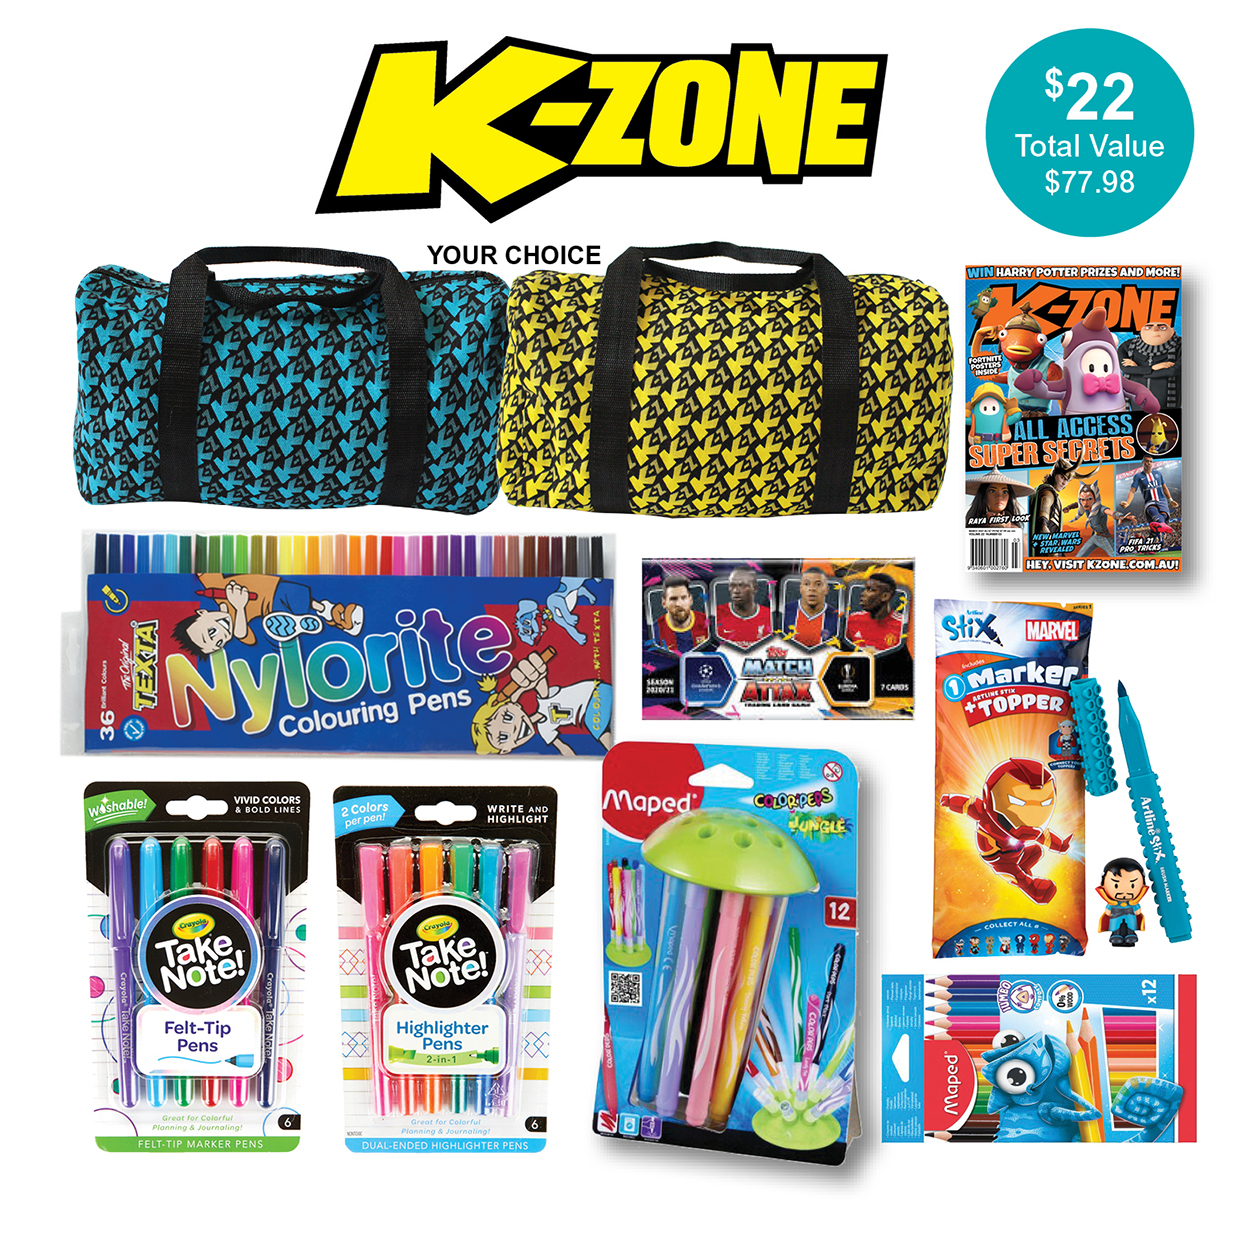 K-Zone Magazine Showbag